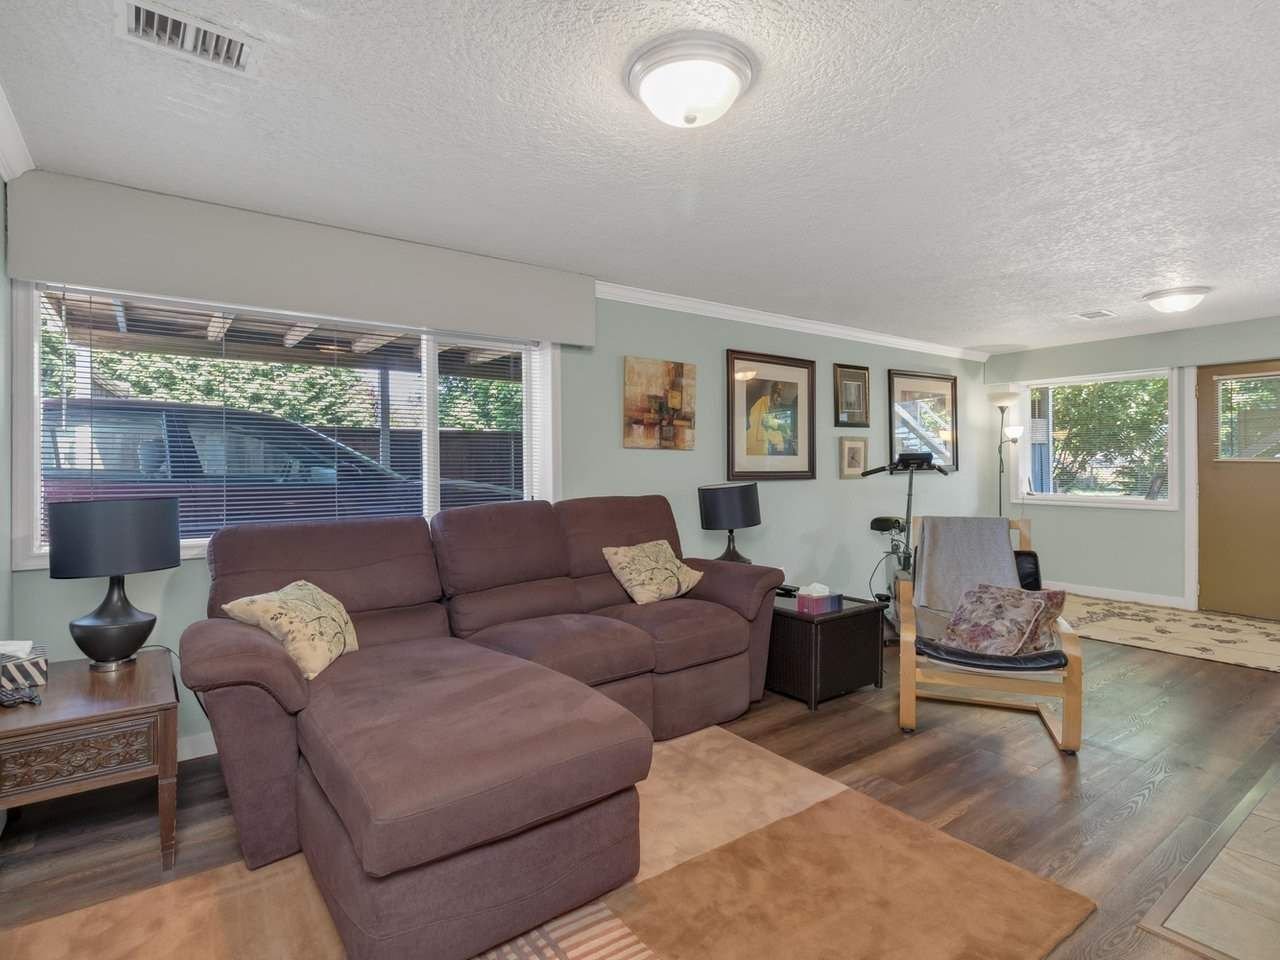 Photo 9: Photos: 943 GATENSBURY Street in Coquitlam: Harbour Chines House for sale : MLS®# R2499202